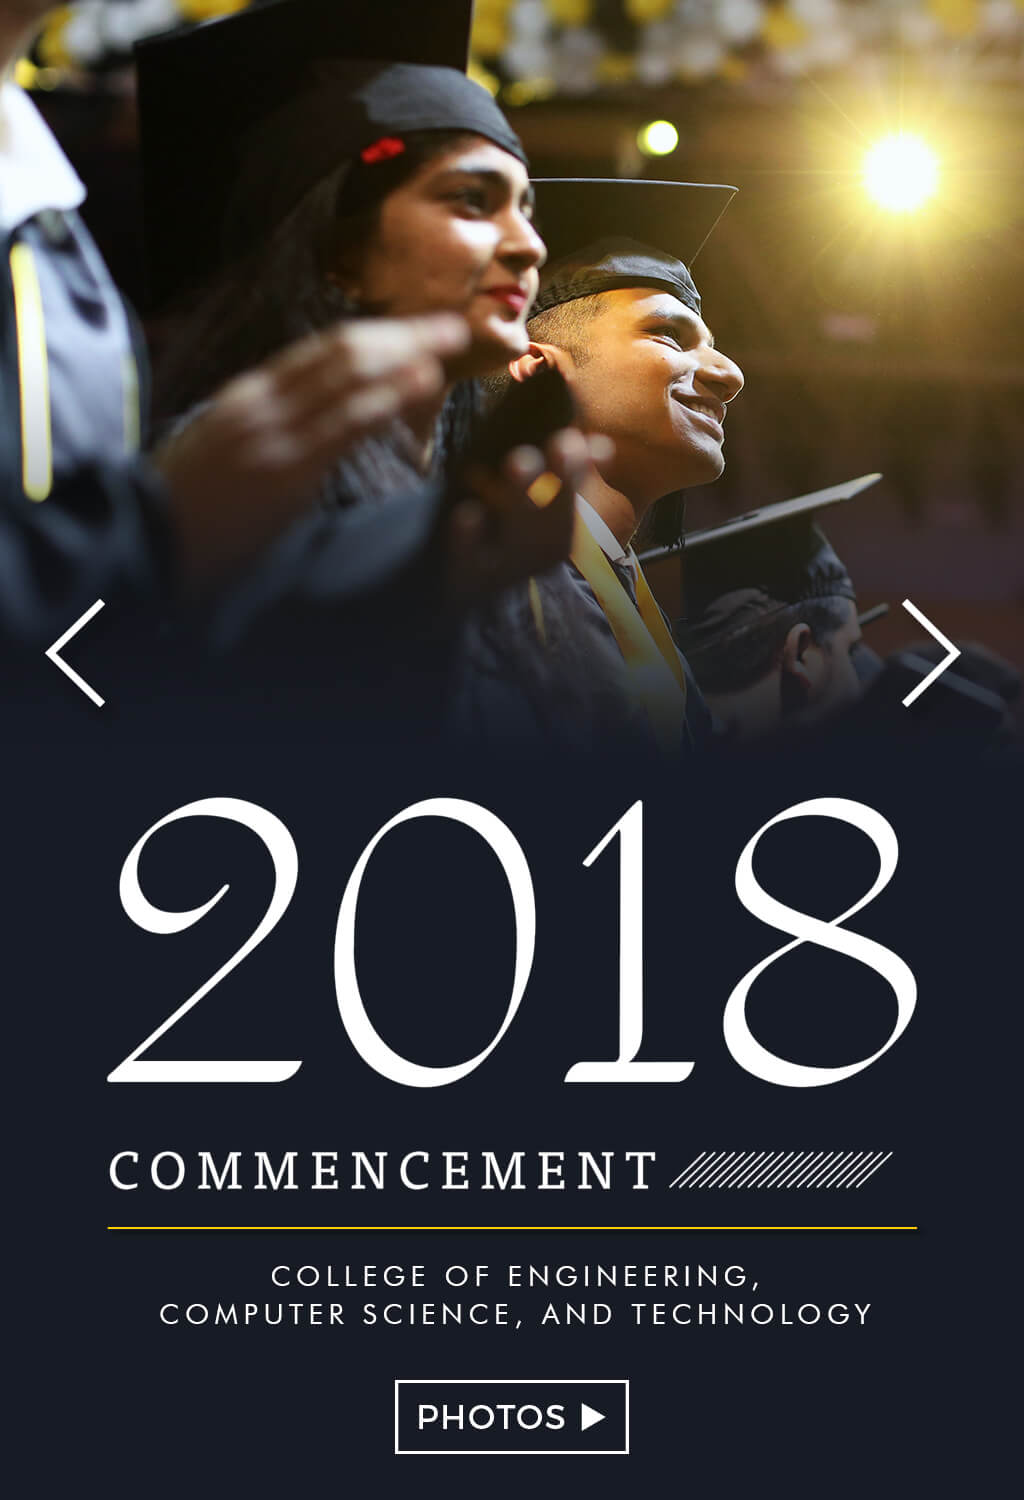 College of Engineering, Computer Science, and Technology Graduates